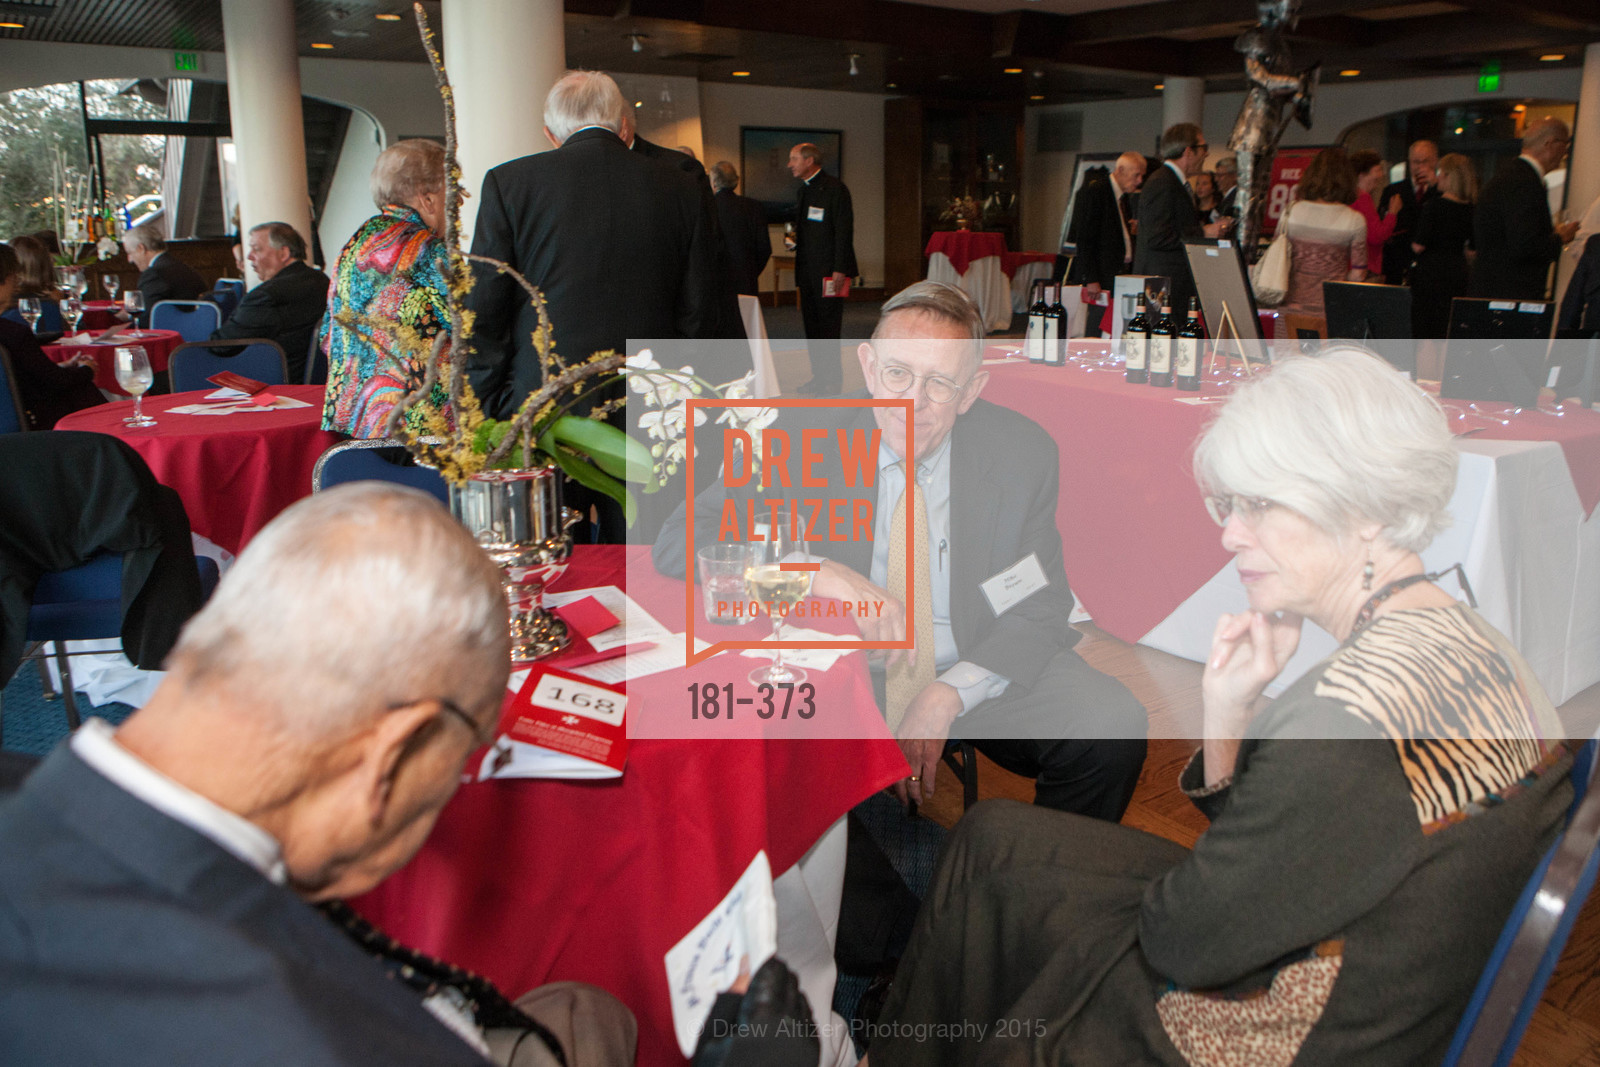 Mike Brown, Sovereign Order of Malta Presents: A Knight for Champions, 7th Annual Silver Chalice Awards Dinner, St. Francis Yacht Club. 99 Yacht Rd, October 13th, 2015,Drew Altizer, Drew Altizer Photography, full-service agency, private events, San Francisco photographer, photographer california